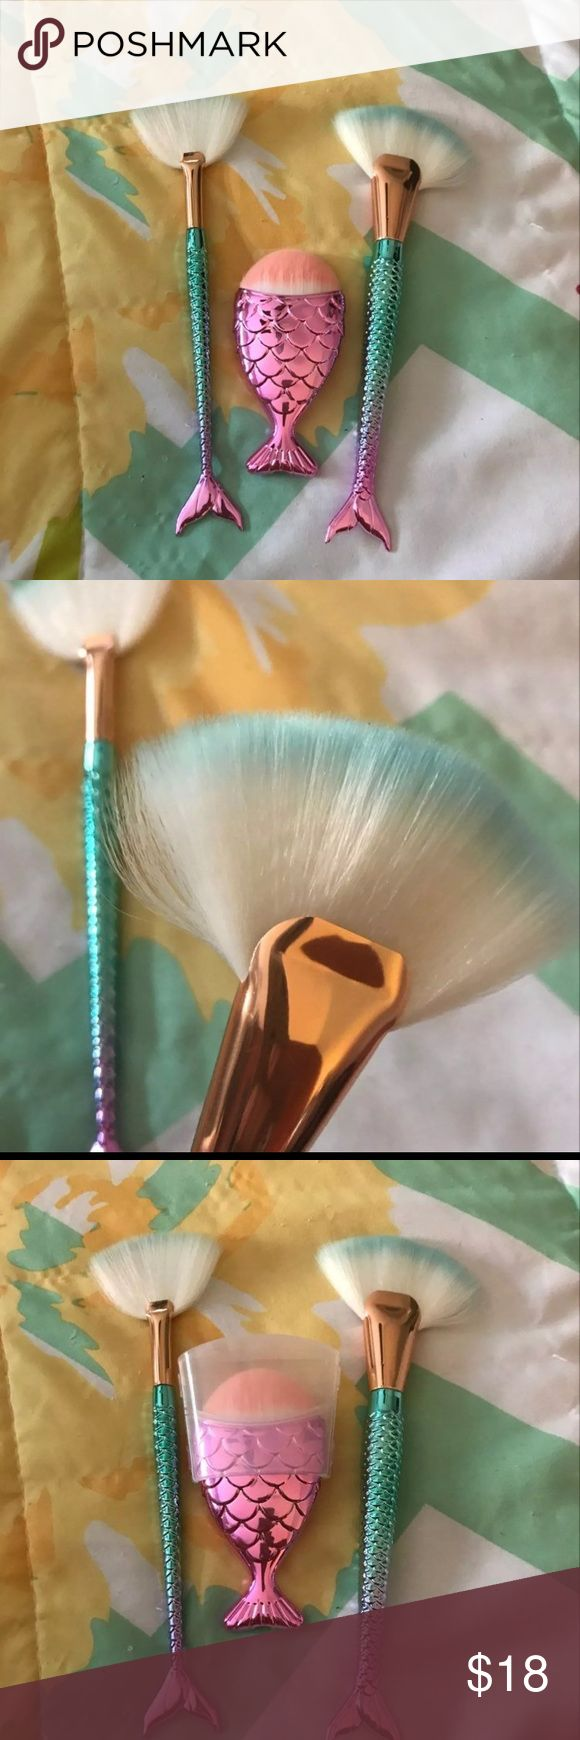 Mermaid Tail Highlighter and Fan Brushes BRAND NEW NEVER USED No TRADES Price is Firm flawnin brush shown in photo 3 Makeup Brushes & Tools